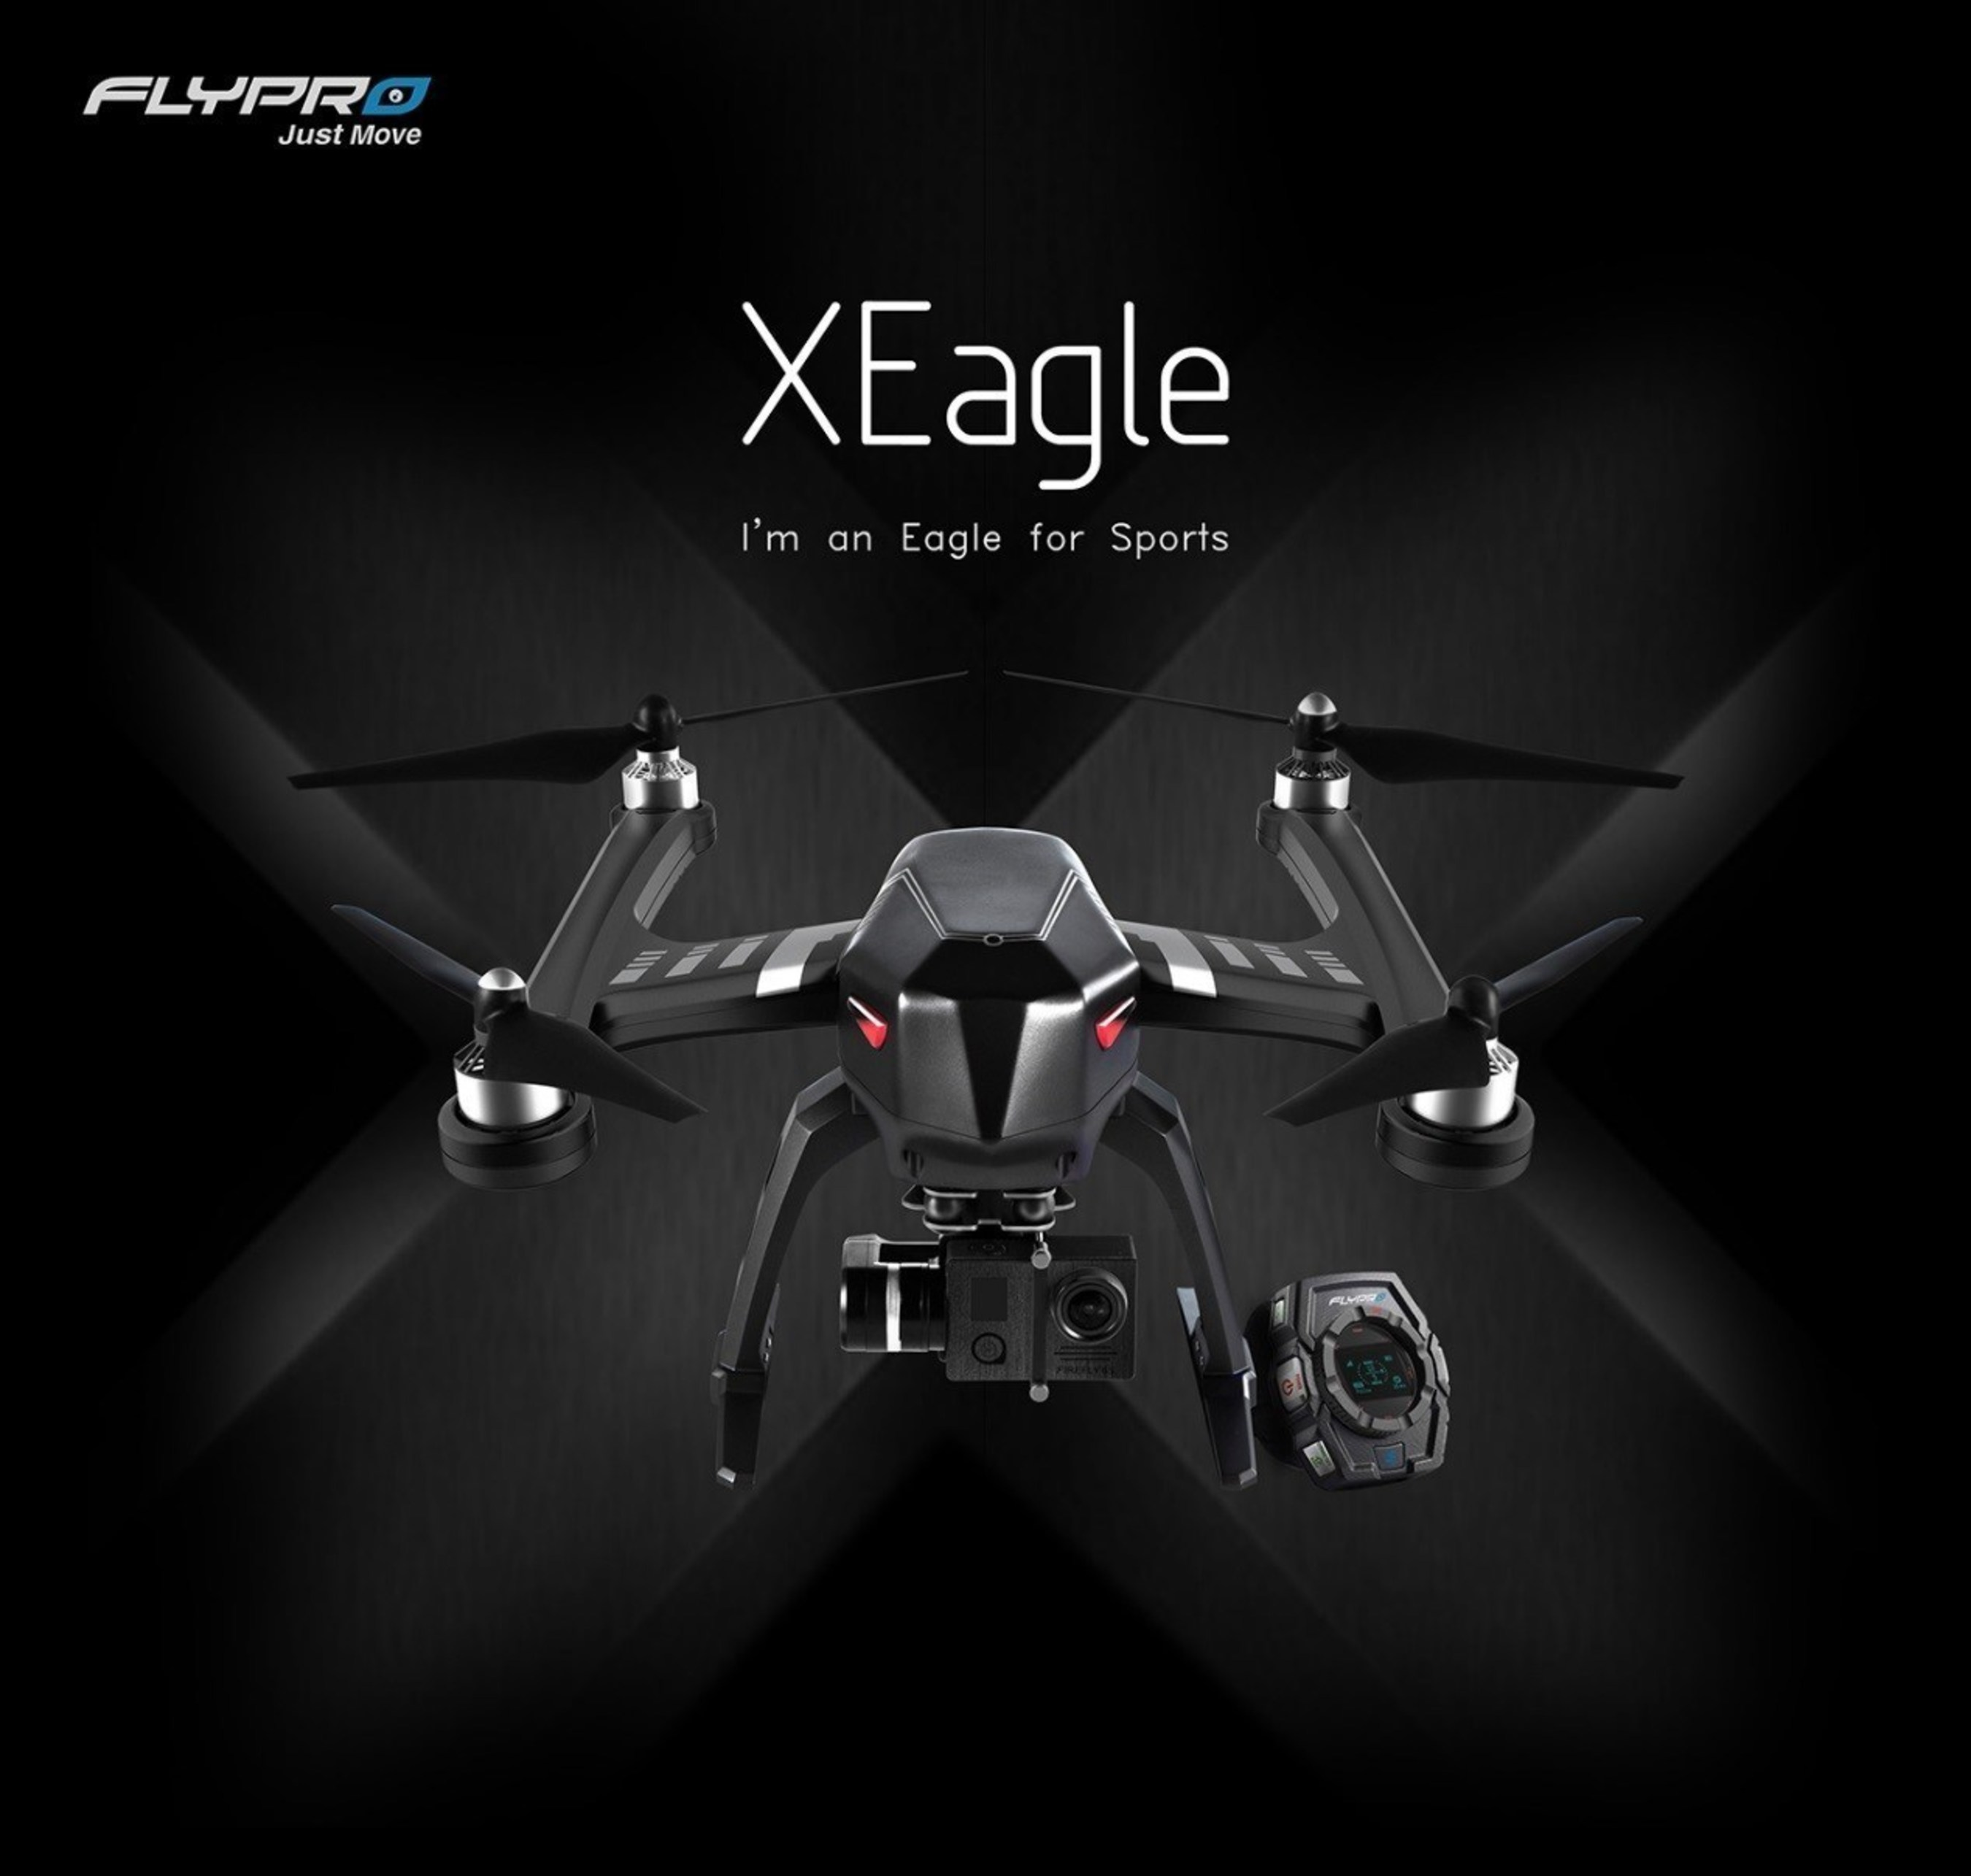 The XEagle, the industry's first smart watch-controlled drone with auto follow and obstacle avoidance functionality